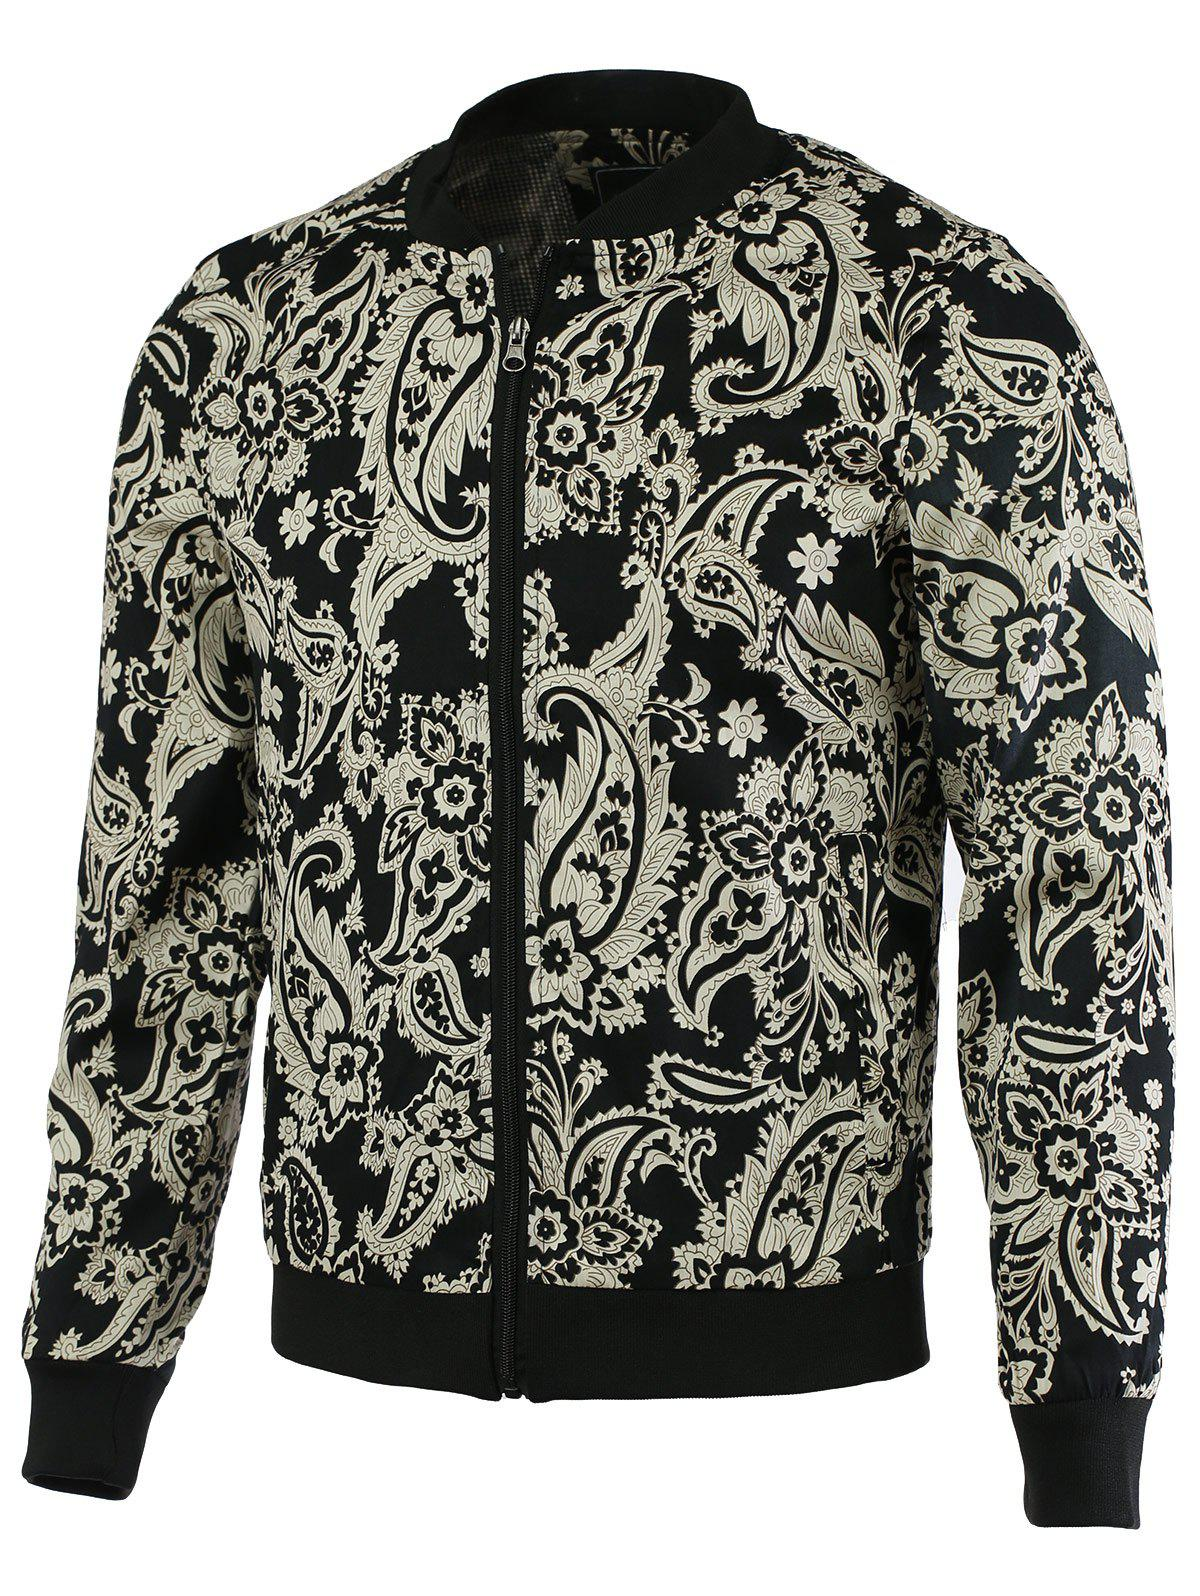 Patchwork Floral Print Zip-Up Jacket leopard floral print zip up jacket